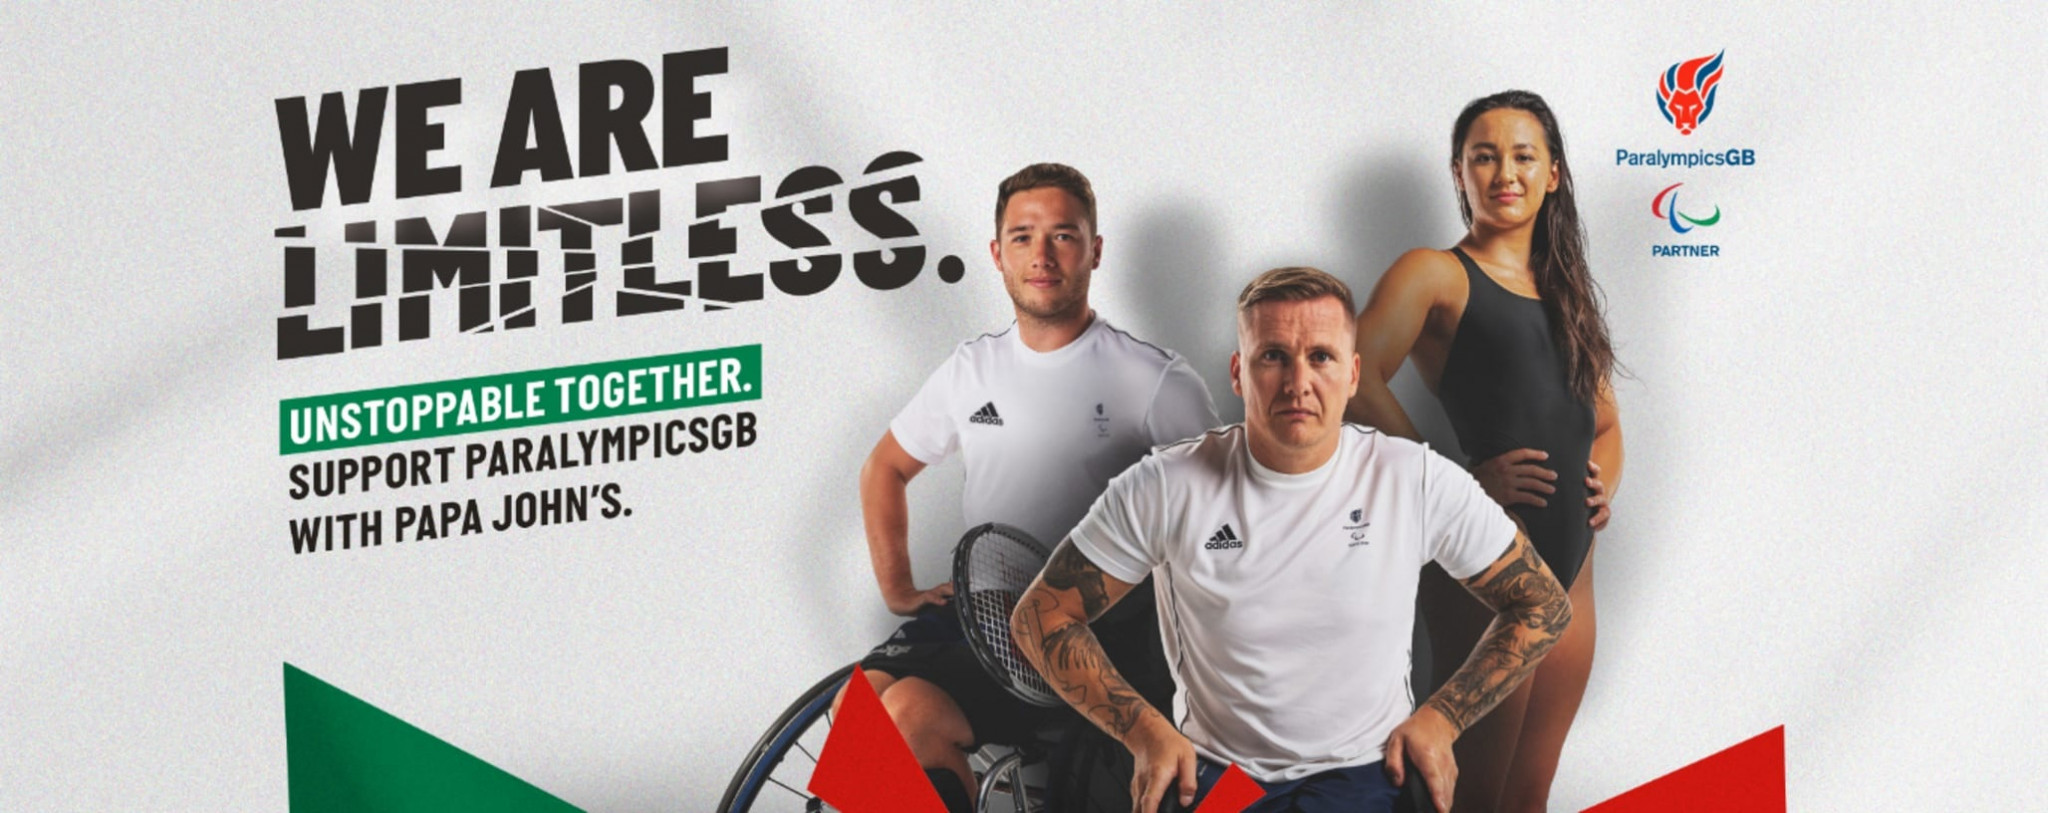 Papa John's bidding to raise £250,000 for ParalympicsGB after joining as official partner